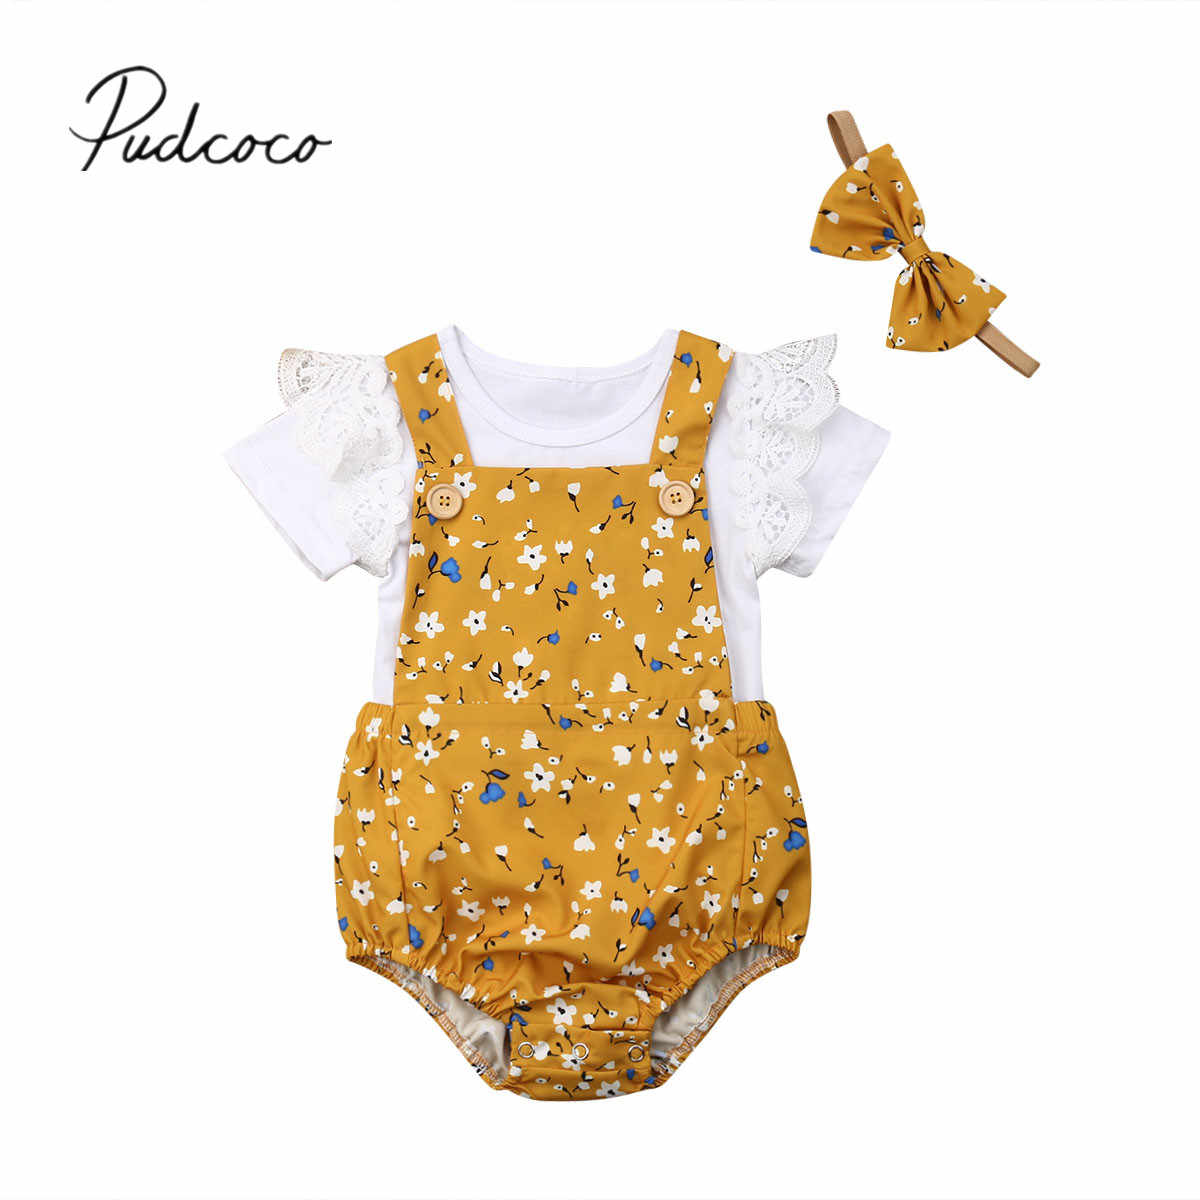 2019 Baby Summer Clothing Infant Baby Girl 3pcs Sets Clothes Short Sleeve T-shirt Floral Romper Babygrow Overall Outfits Sunsuit